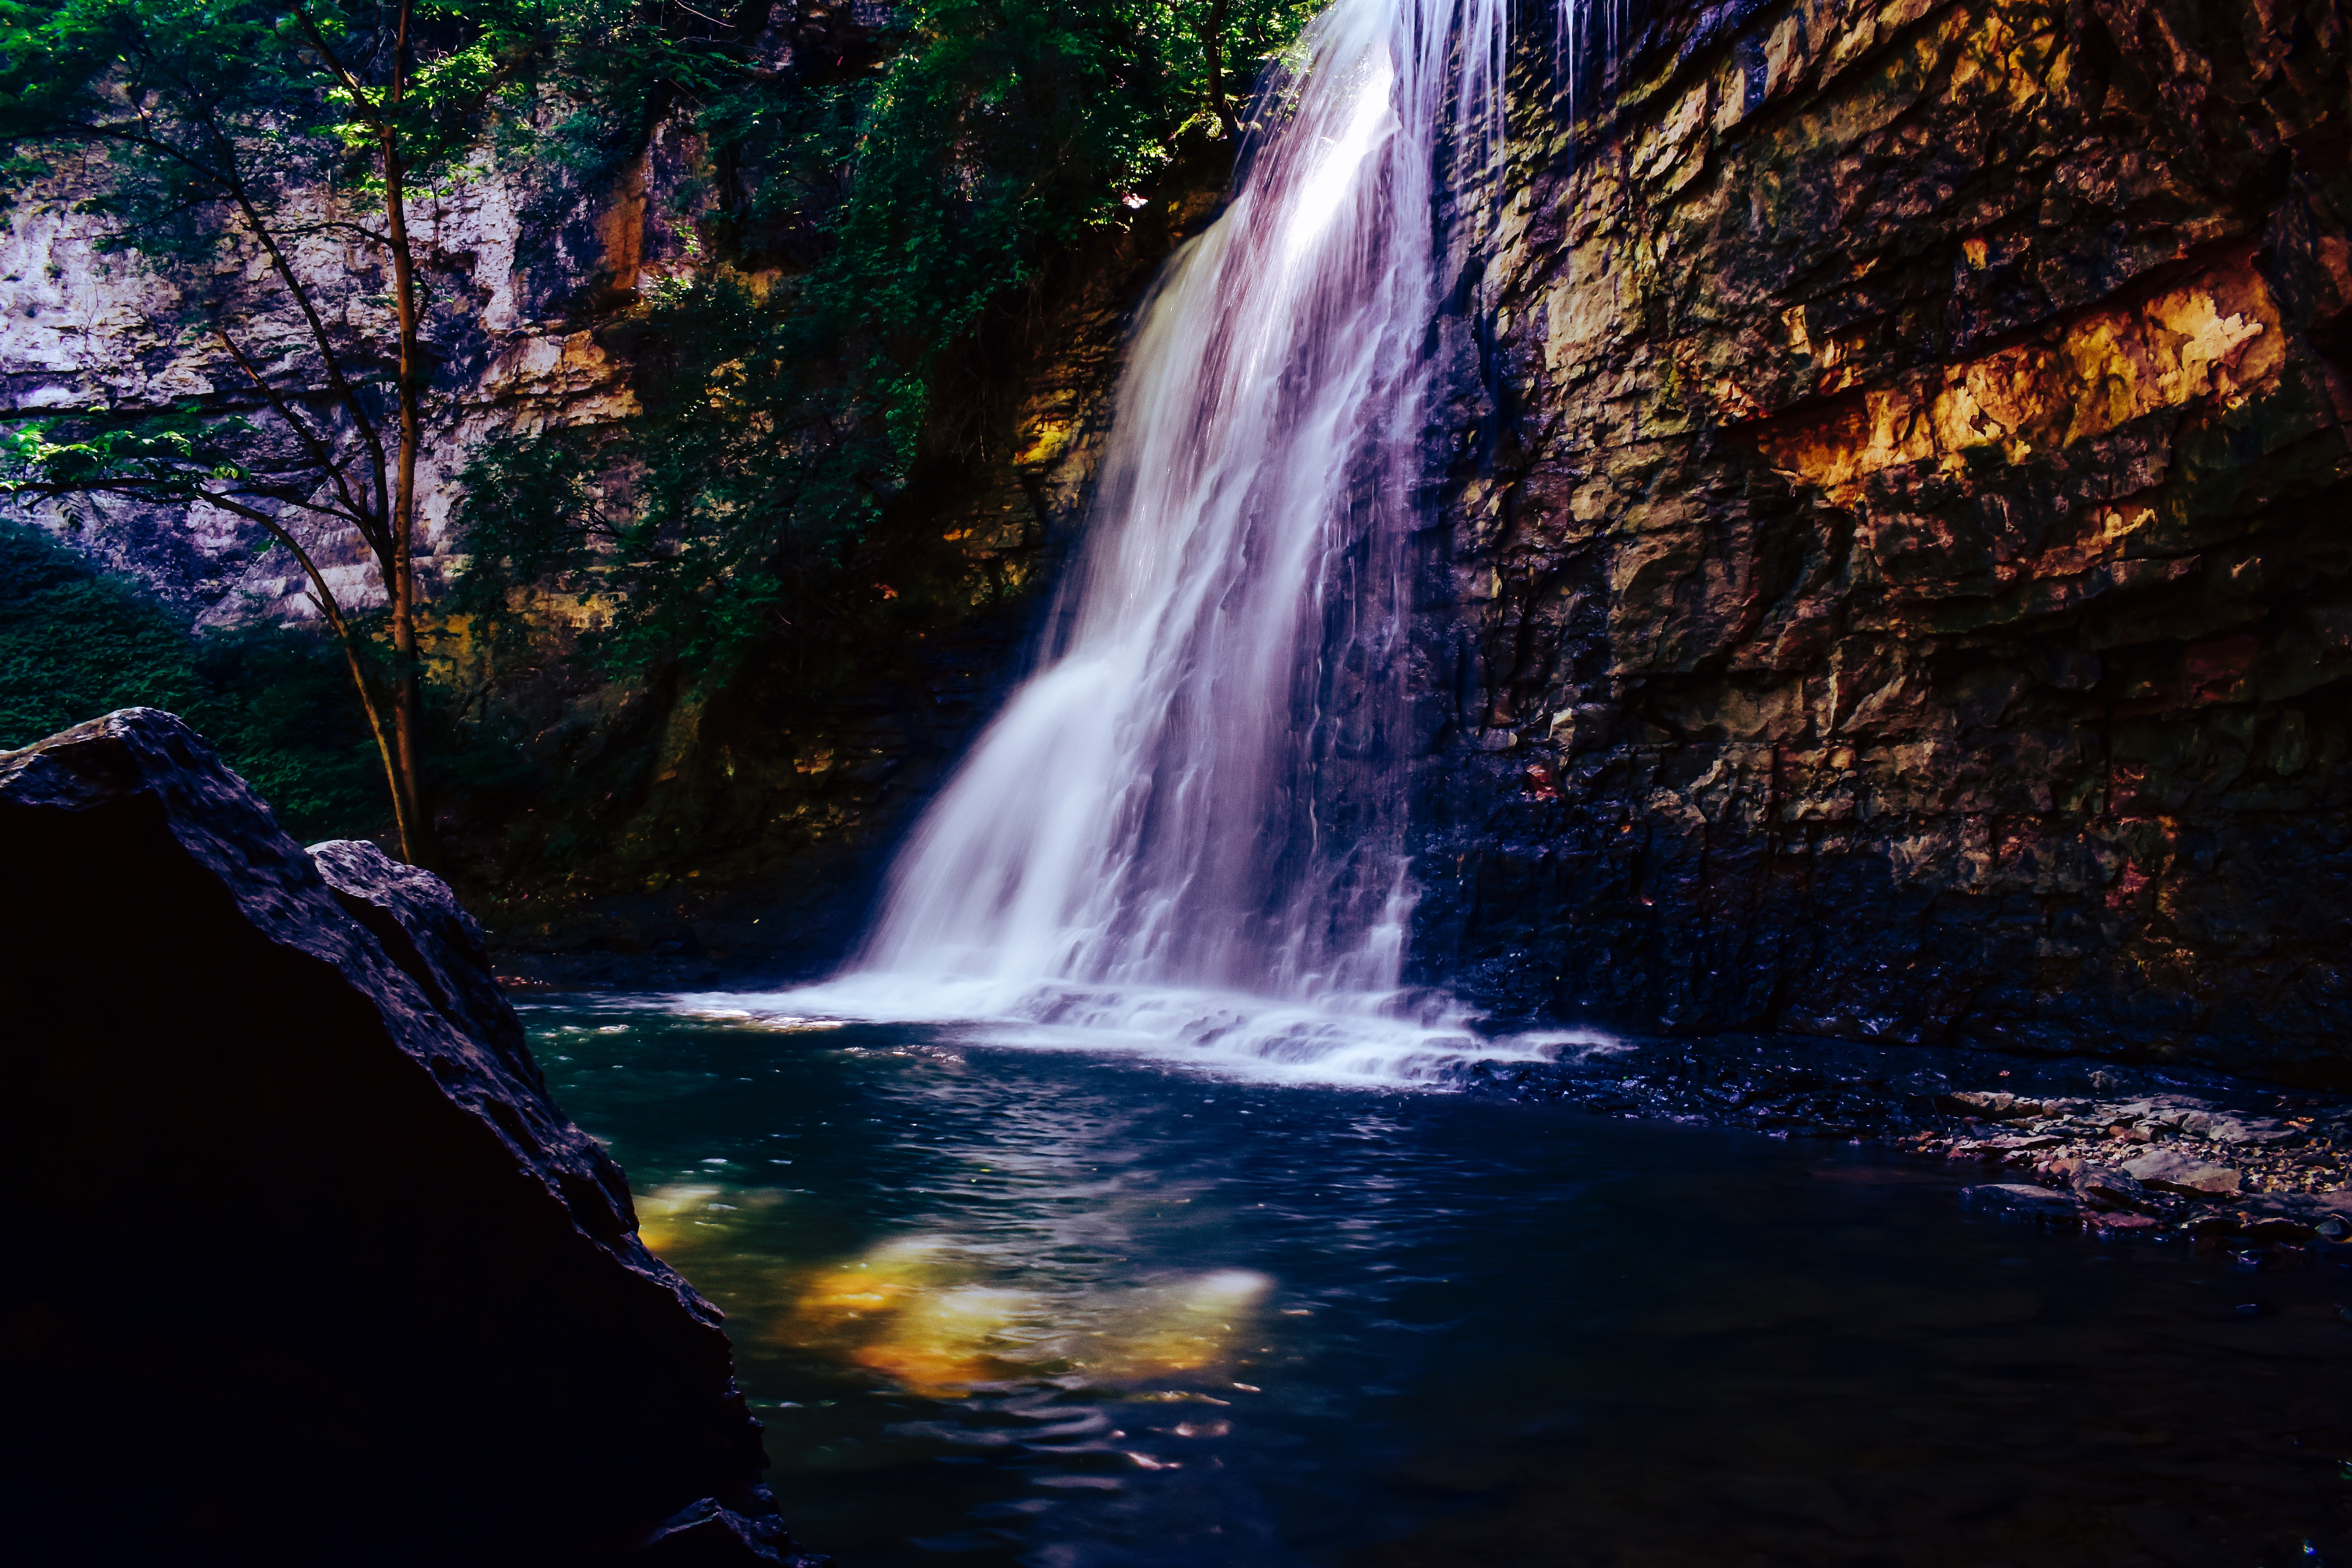 Waterfall Scenery 5k, HD Nature, 4k Wallpapers, Images ...